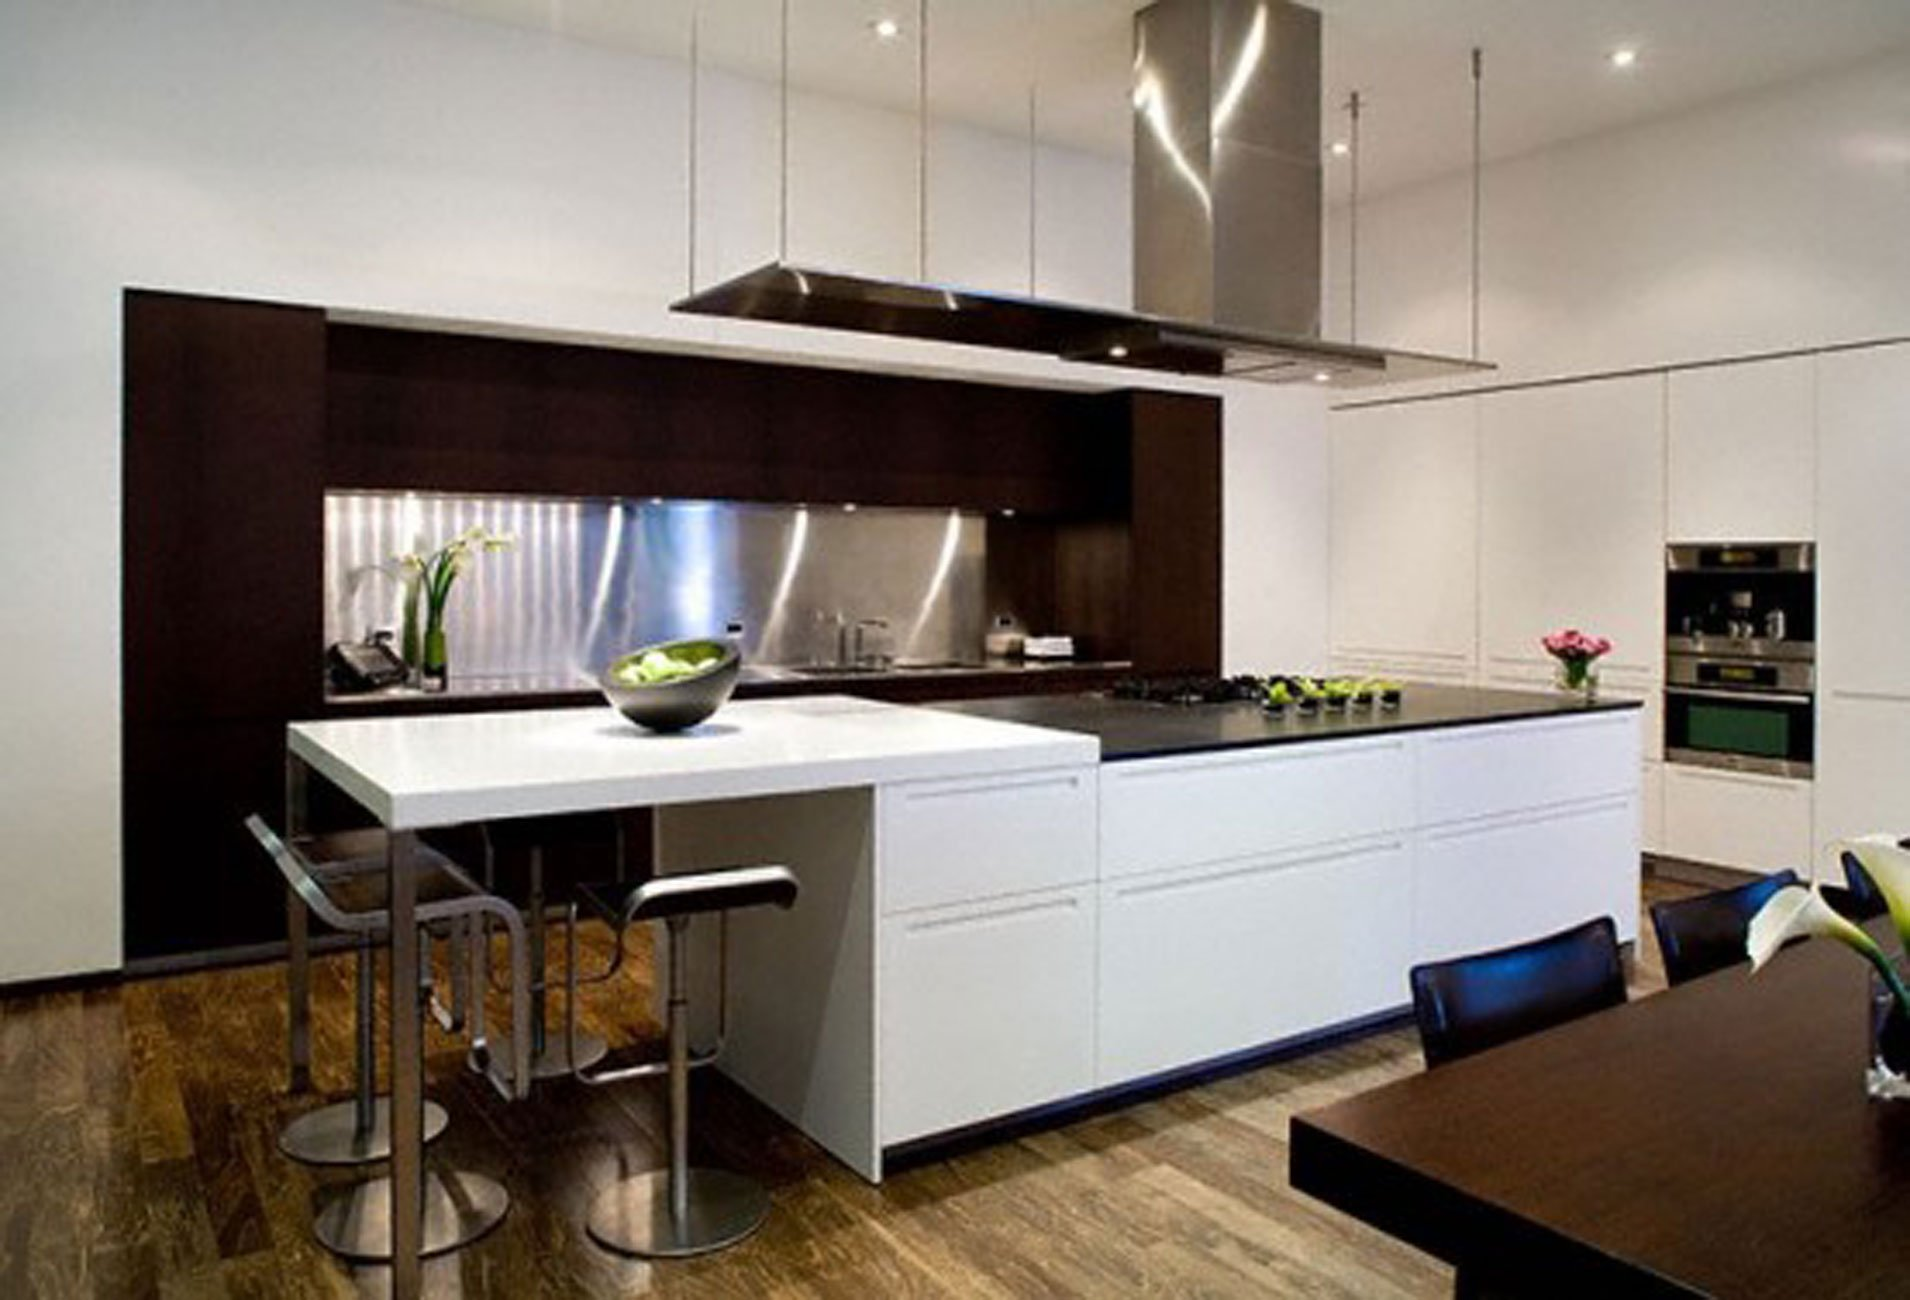 Modern kitchen interior designs homesfeed for Modern kitchen interior design ideas